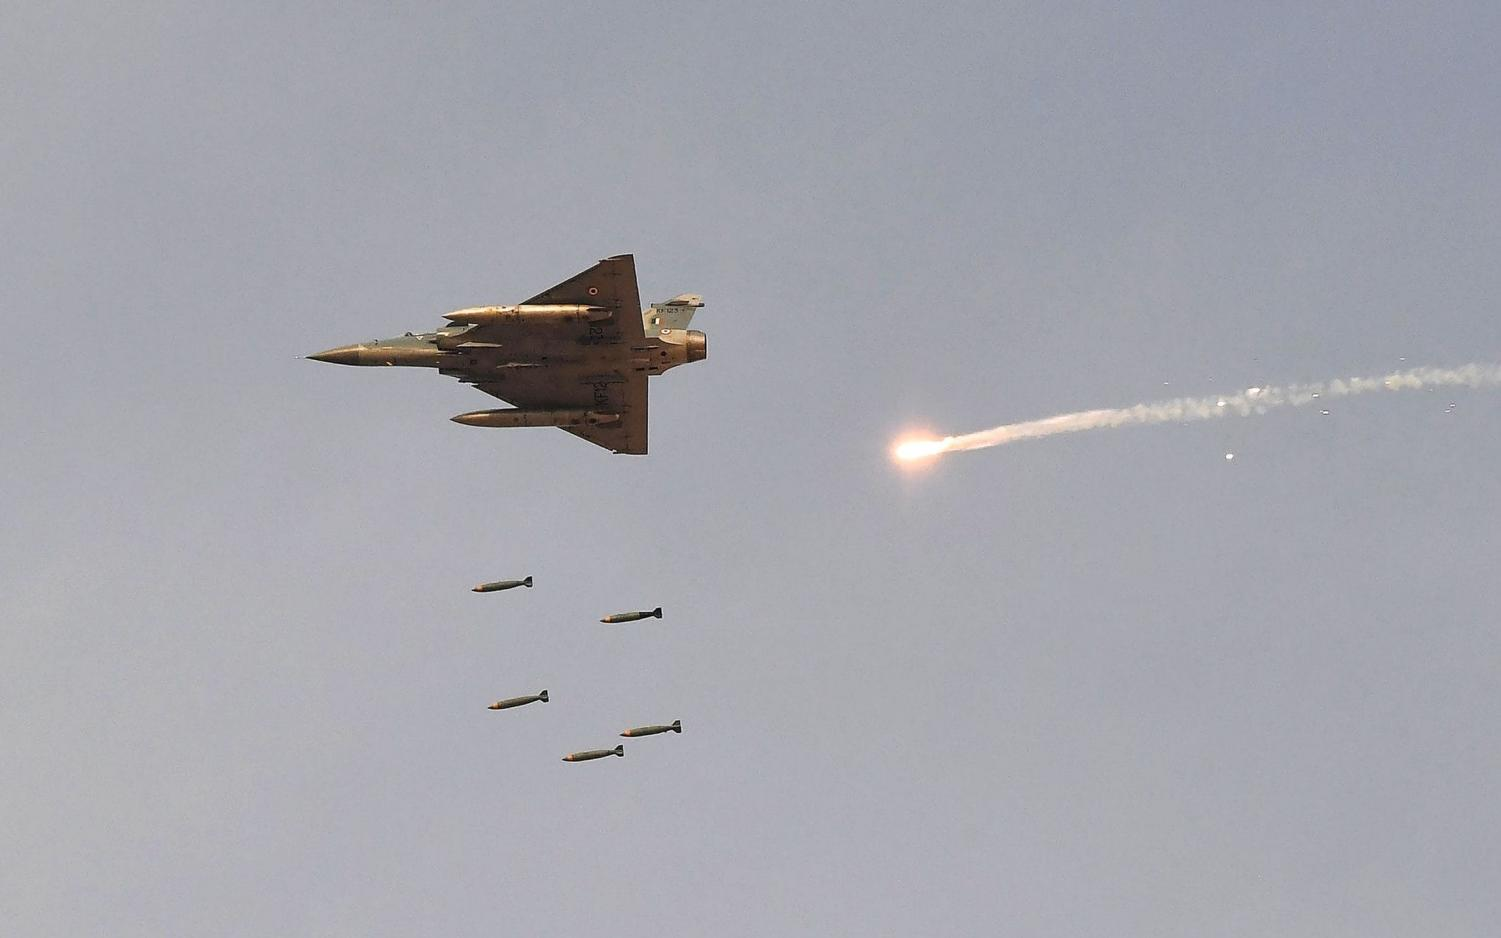 Indian Air Force fighter aircraft during the Vayu Shakti fire power earlier this month.